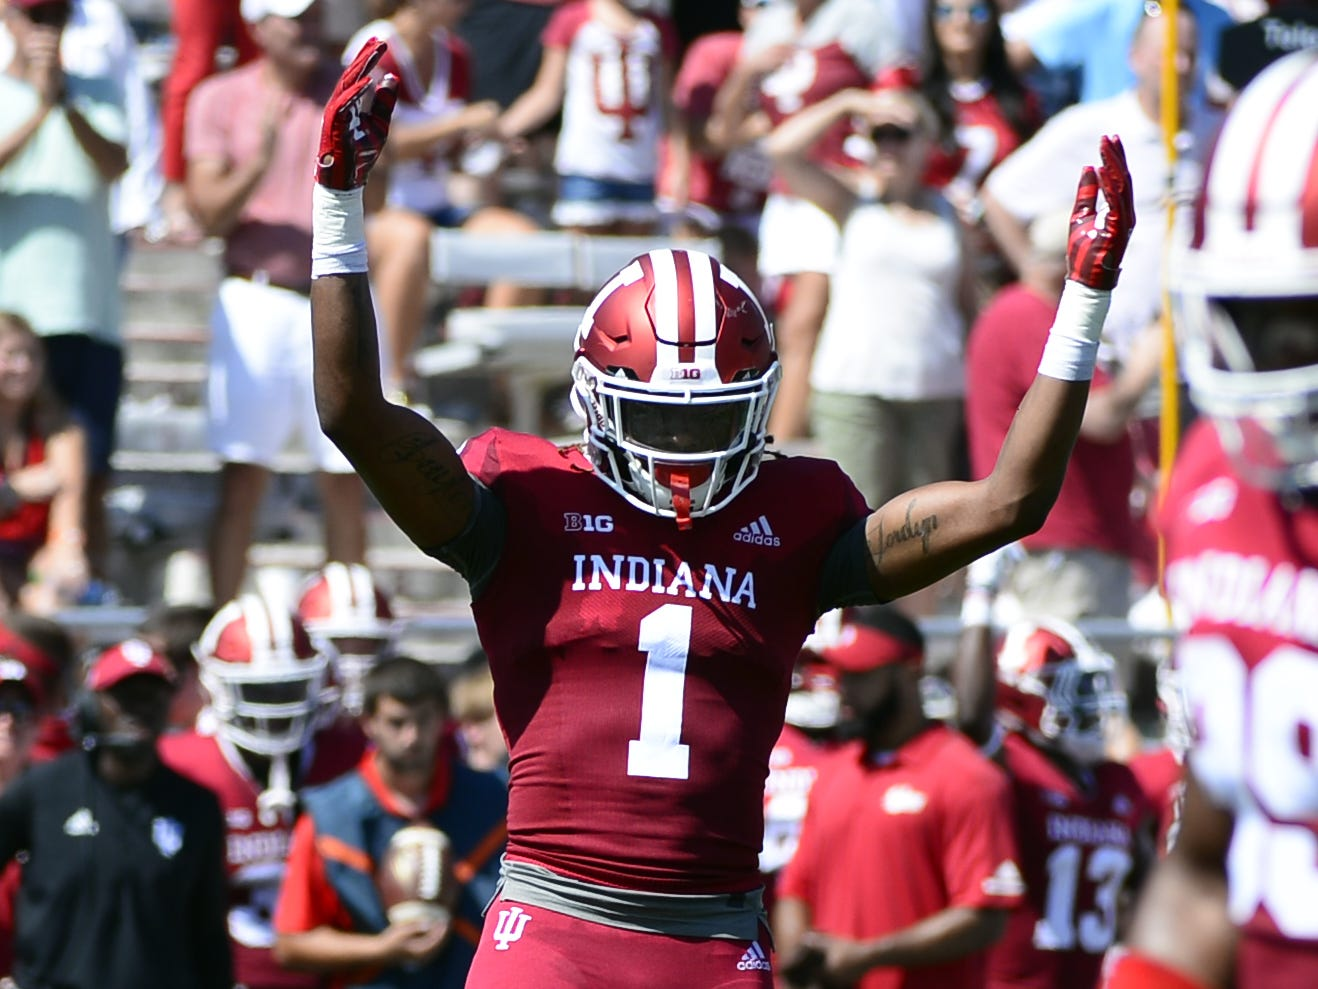 Indiana Hoosiers defensive back Juwan Burgess (1) hypes up the crowd during the game against Ball State at Memorial Stadium in Bloomington, Ind., on Saturday, Sept. 15, 2018.